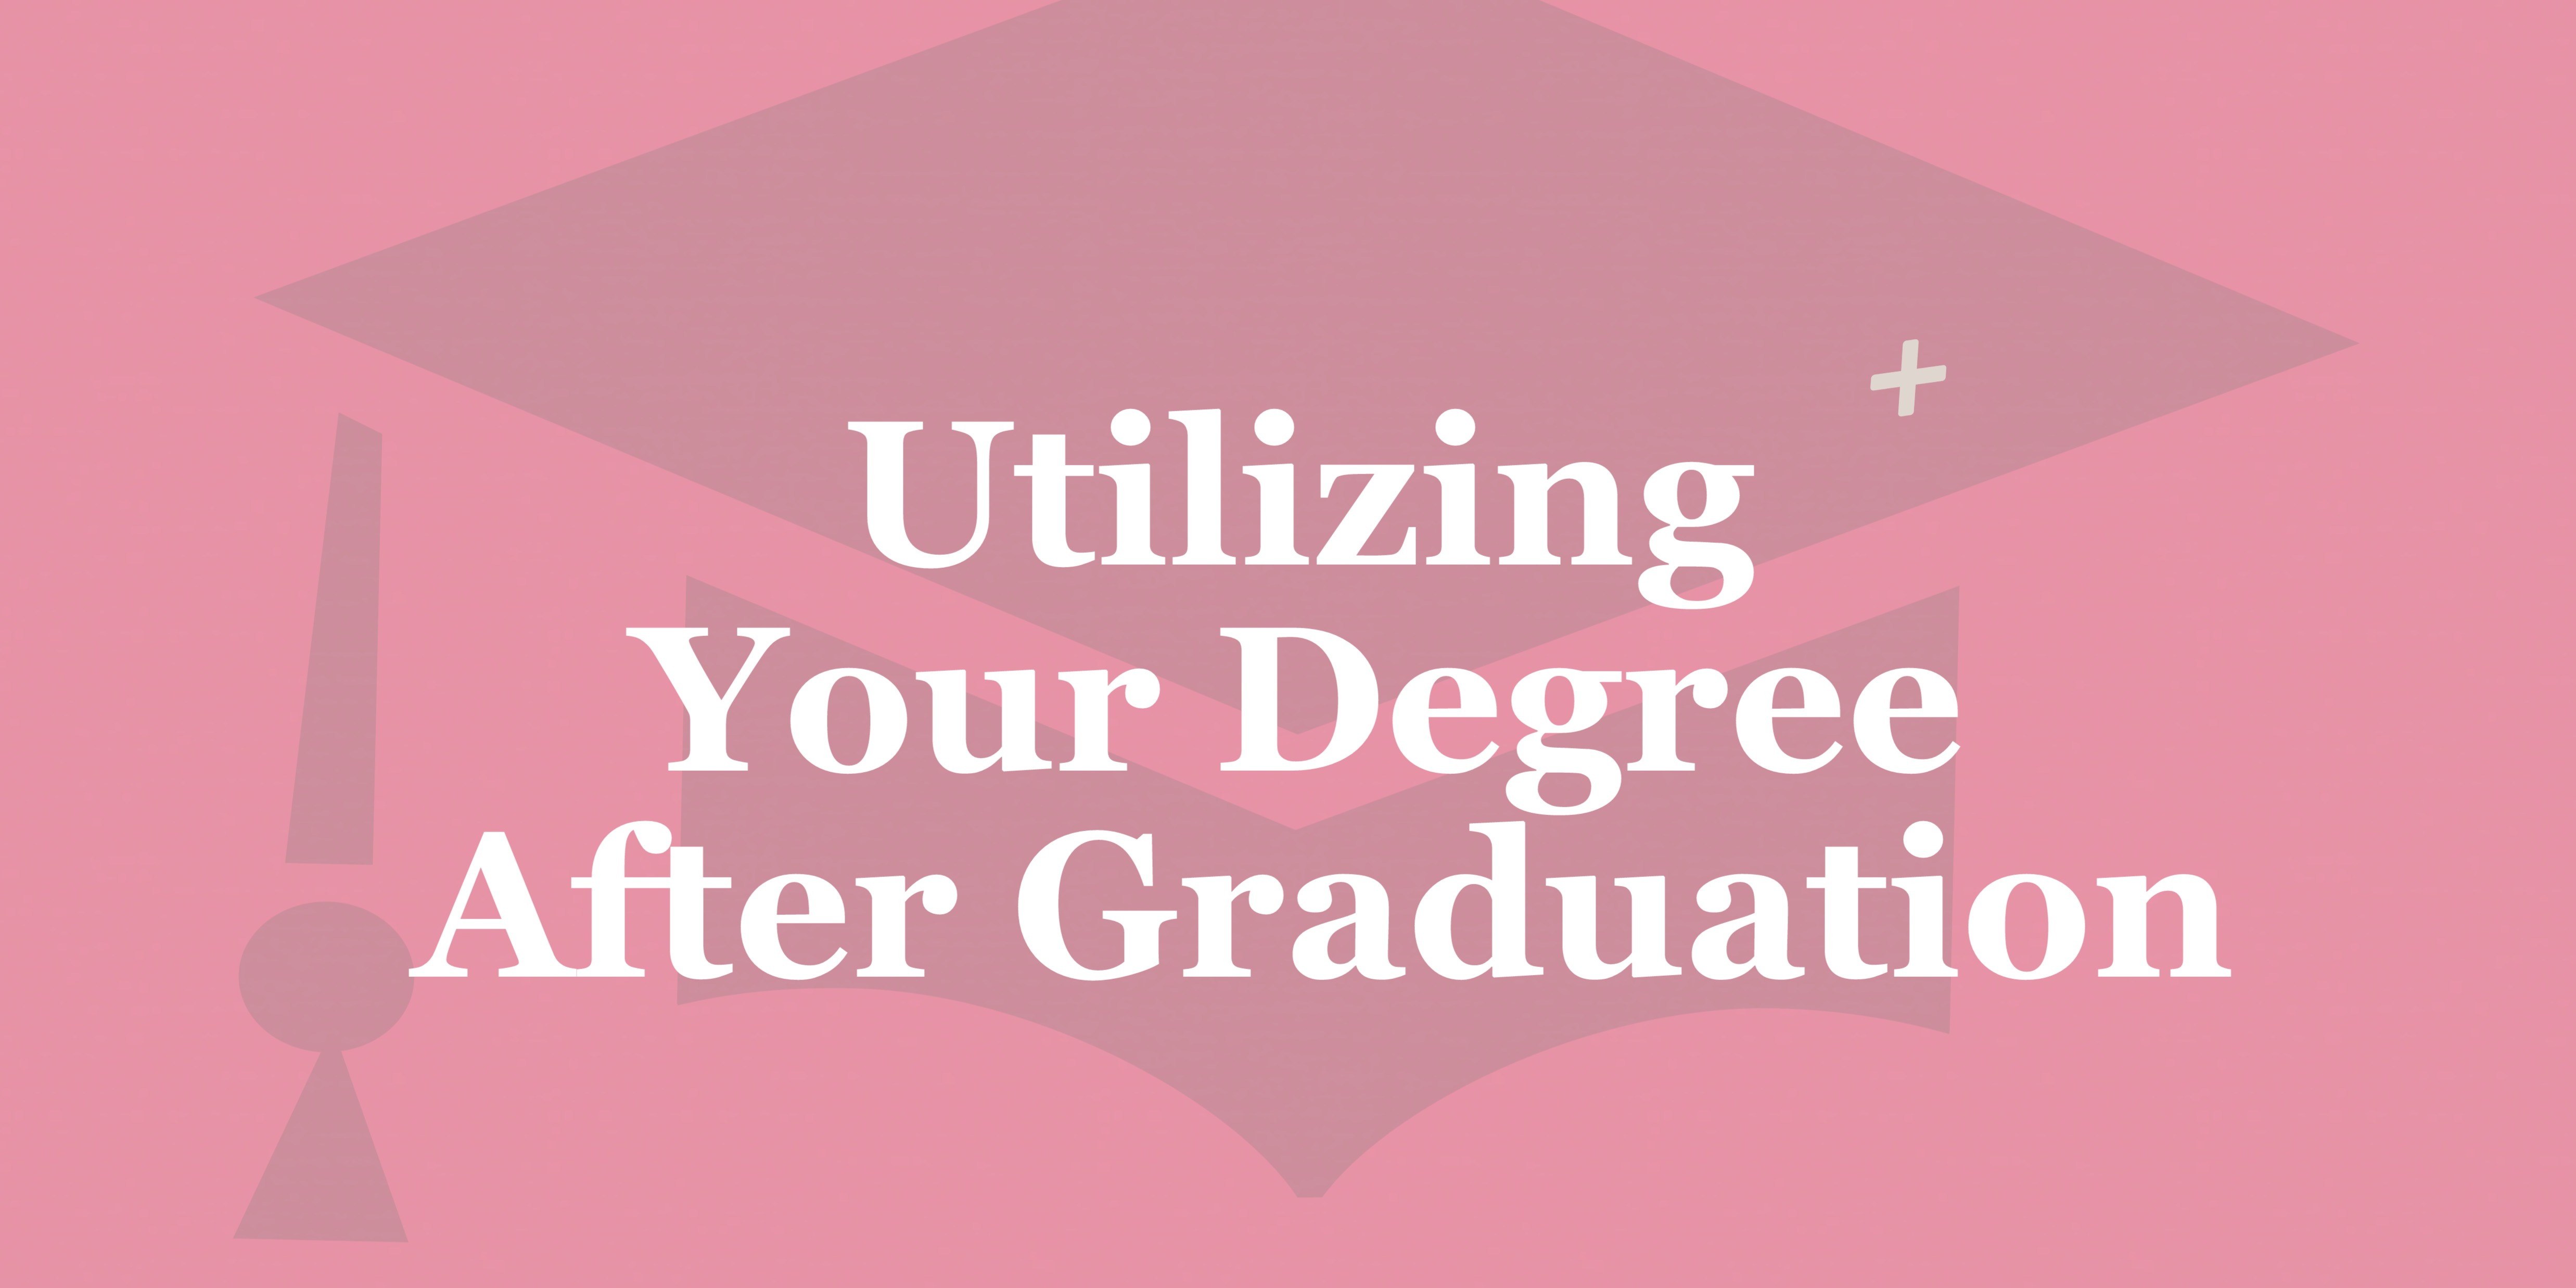 What to do with a degree after graduation